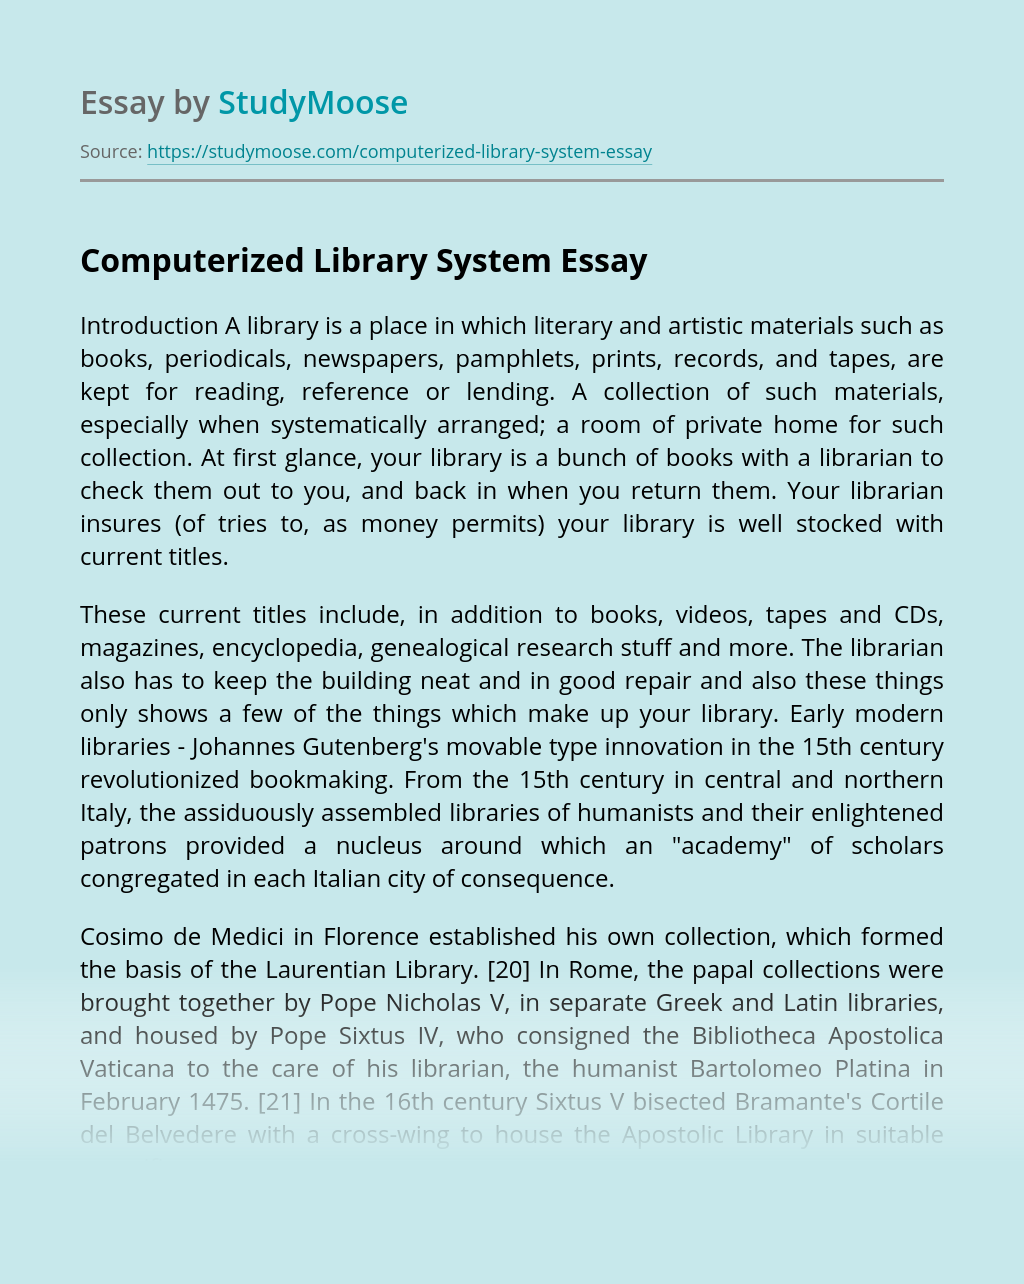 Computerized Library System